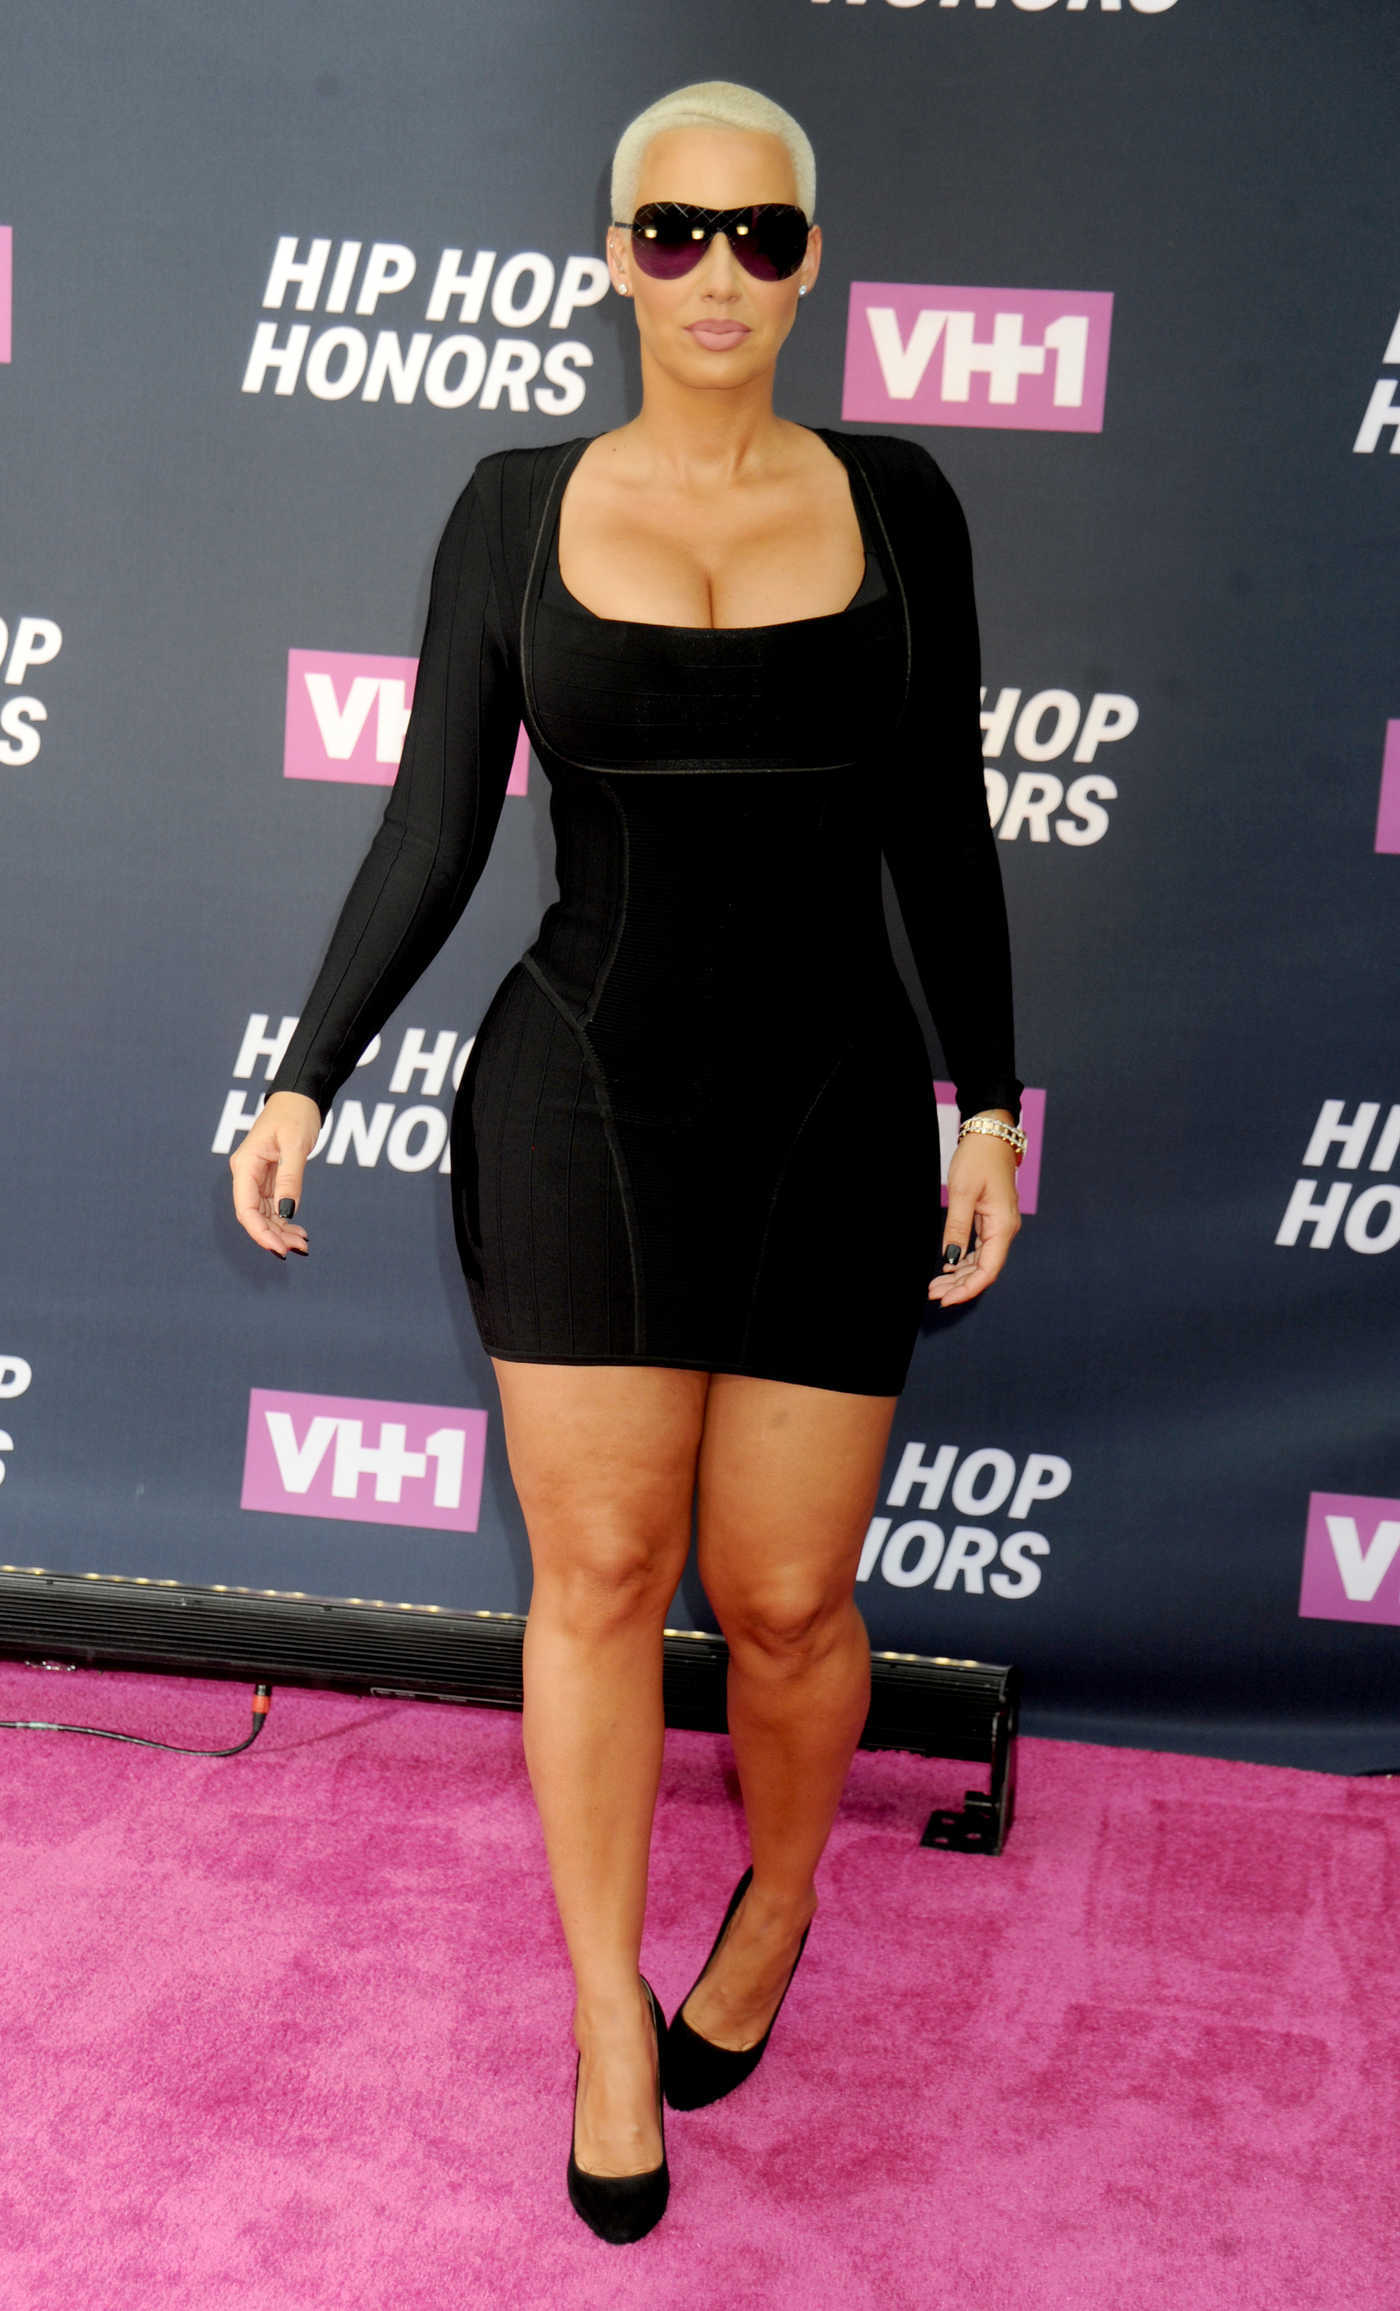 Amber Rose at the VH1 Hip Hop Honors in New York City 07/11/2016